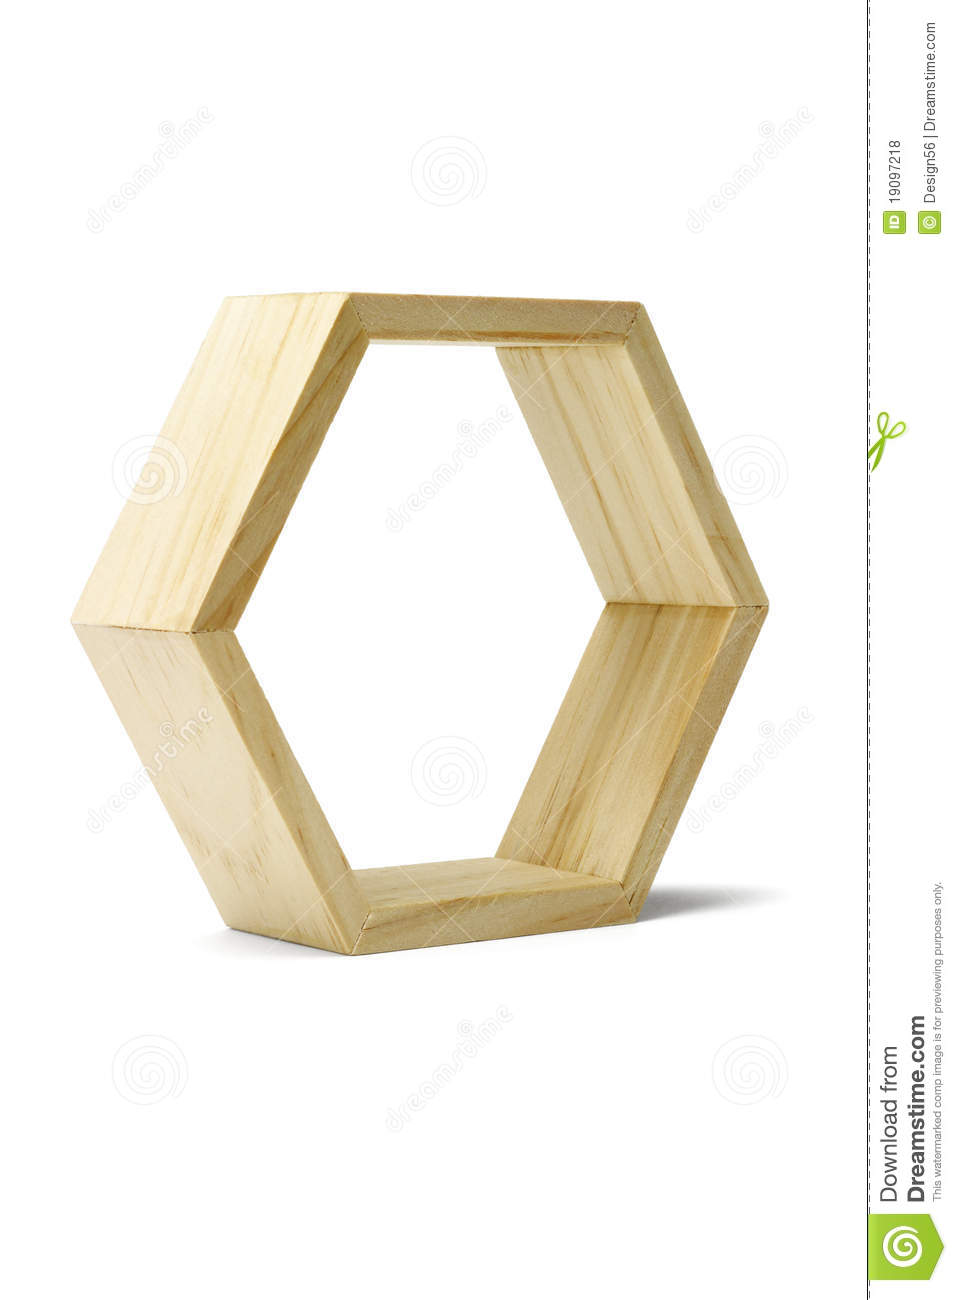 Wooden Hexagonal Ring Royalty Free Stock Photos - Image: 19097218